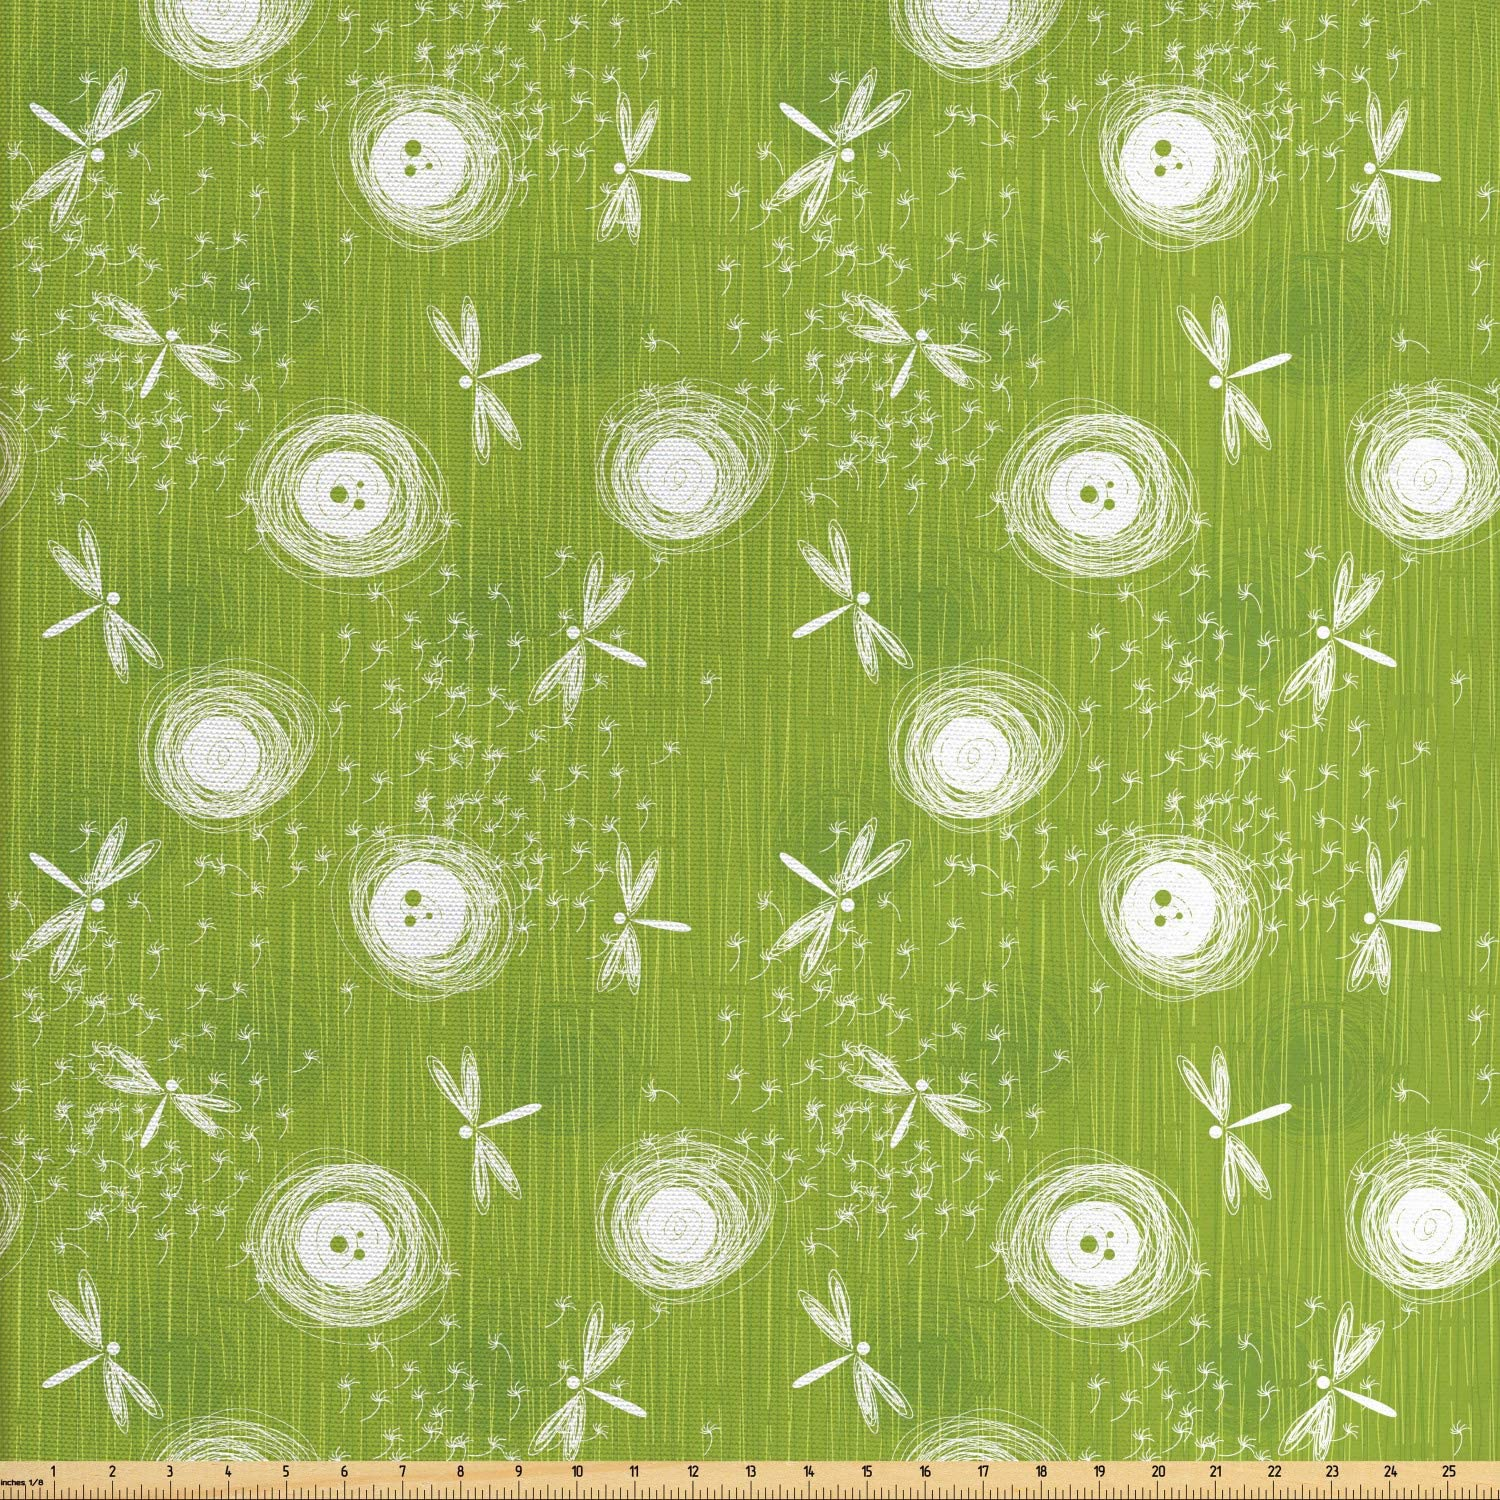 Ambesonne Dragonfly Fabric by The Yard, Sketch Style Dandelion Flower Petals Spring Beauty Nature Blossom Image, Decorative Fabric for Upholstery and Home Accents, Lime Green Cream